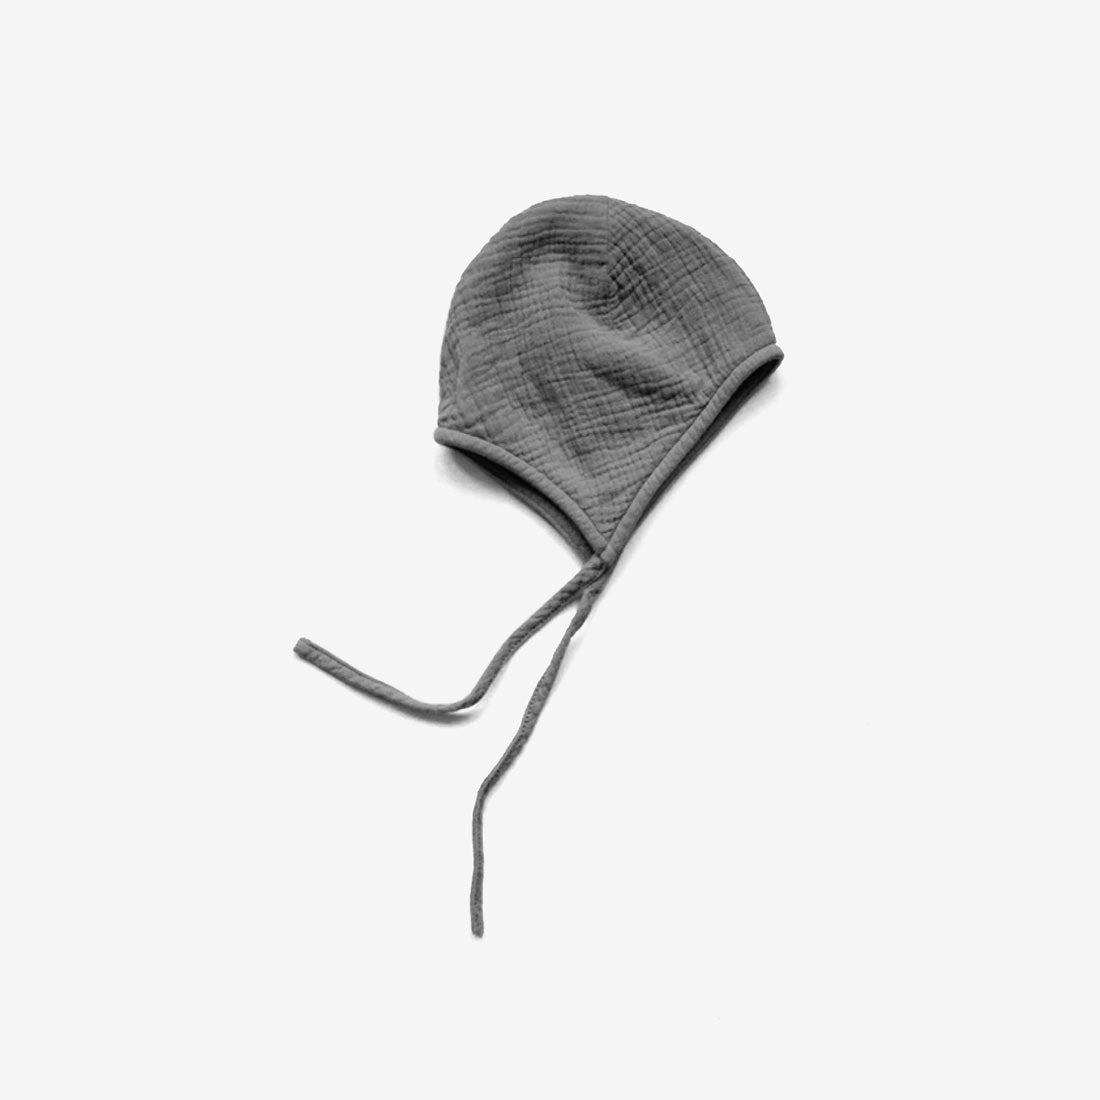 The Garden Cotton Muslin Bonnet Cap - Lead Grey